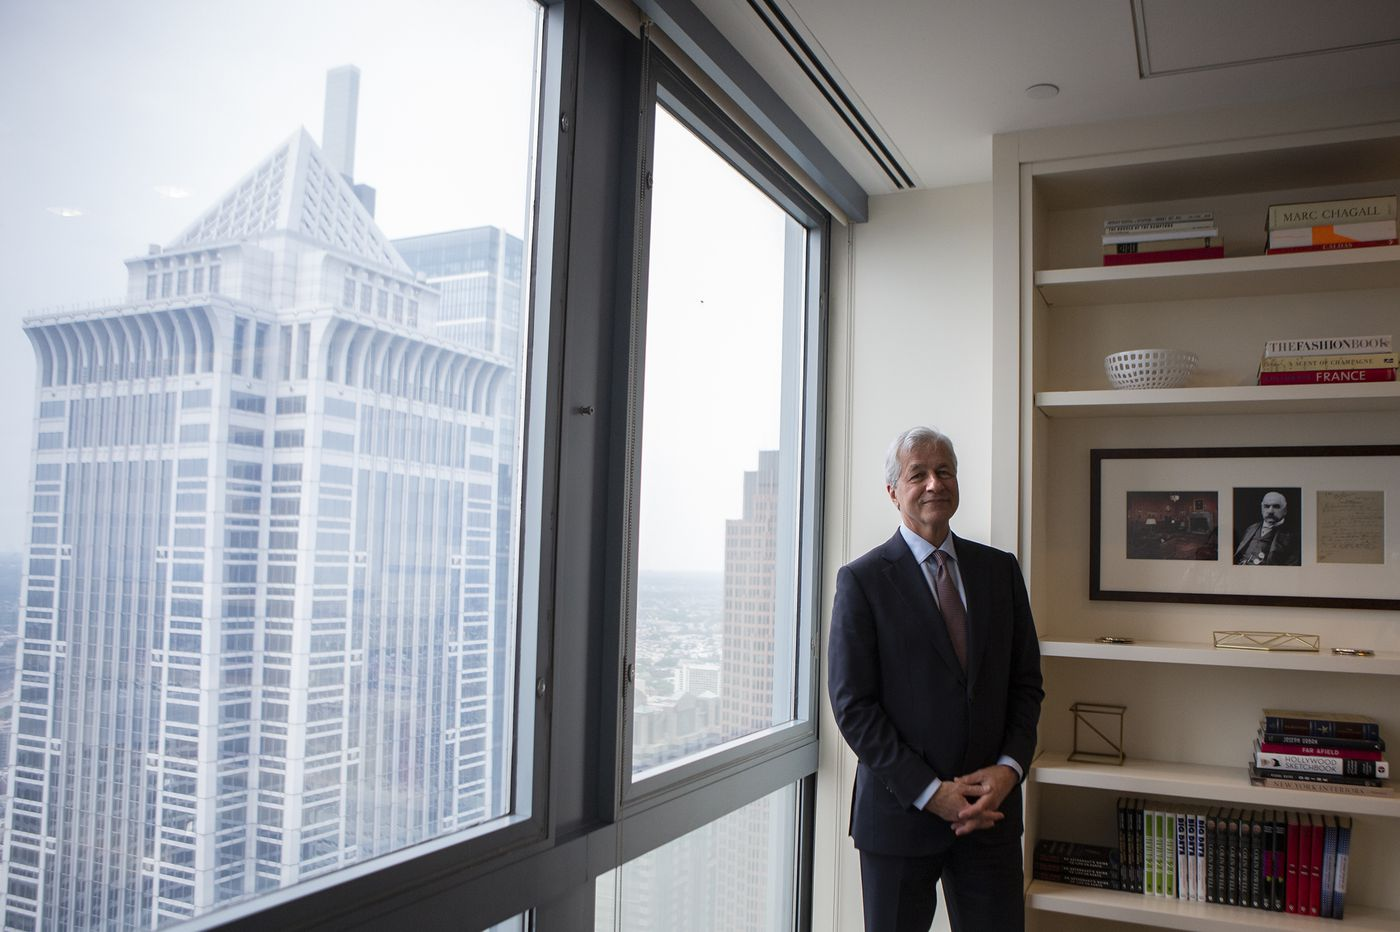 JPMorgan's Dimon on Comcast, Wall Street, and wooing Philly customers